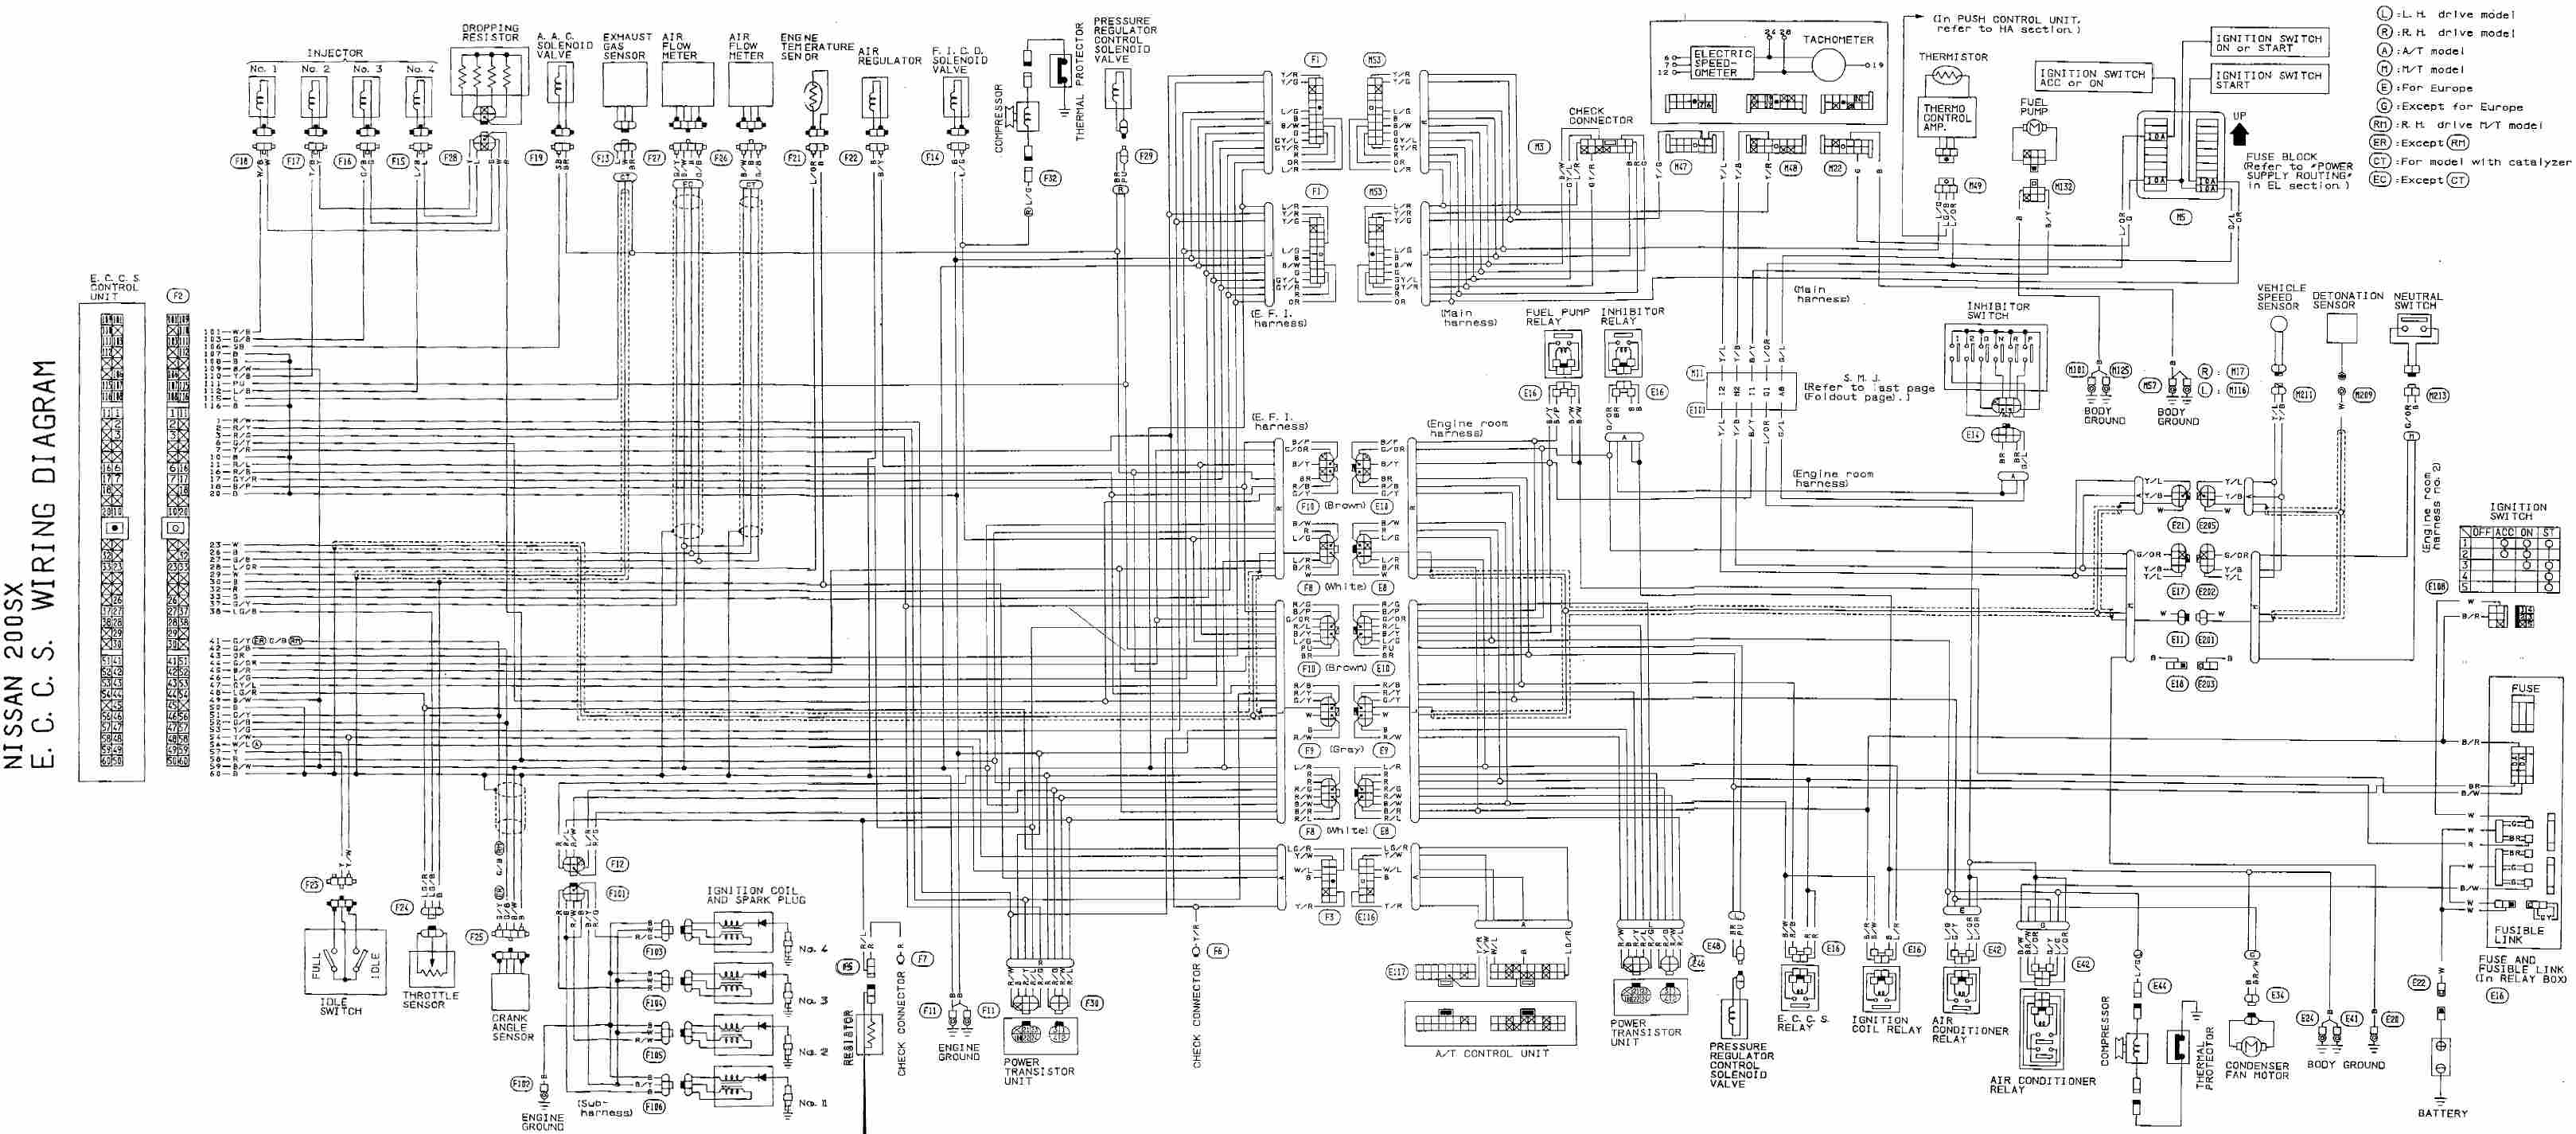 complete eccs wiring diagram of nissan 200x?t\=1508500919 300zx wiring diagram 300zx engine wiring diagram \u2022 wiring diagrams 2005 nissan sentra wiring diagram at edmiracle.co